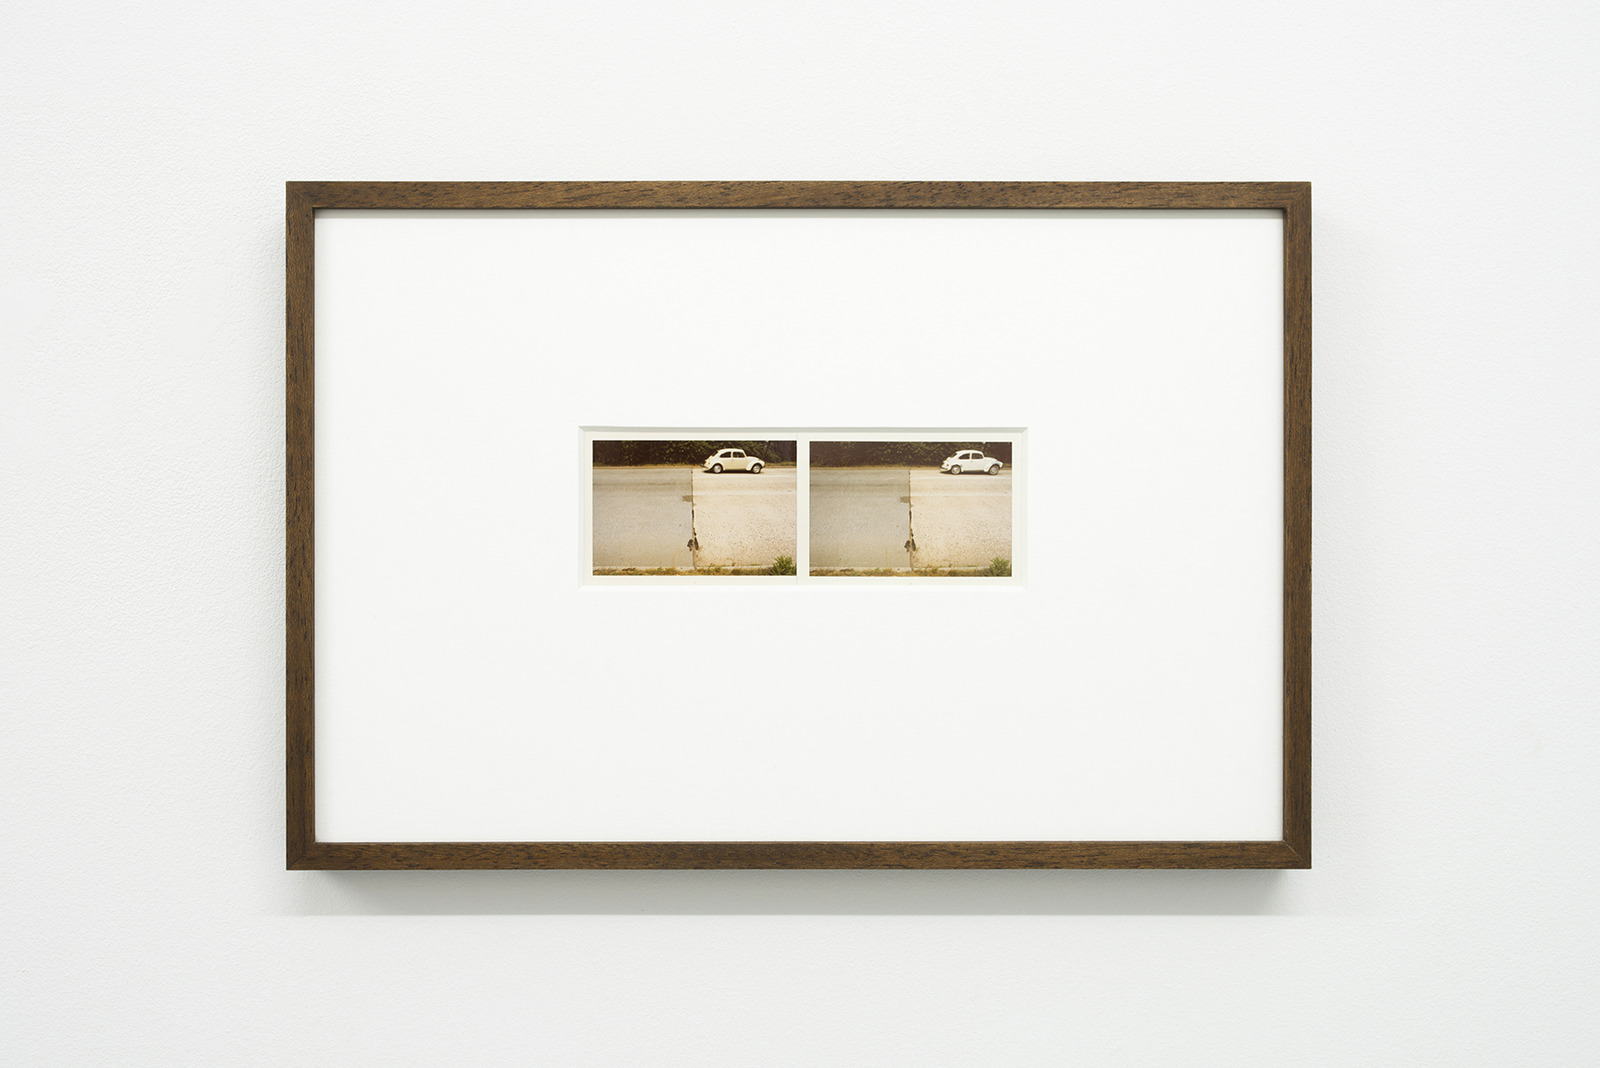 Jan Groover, 'Untitled' 1978 - unique